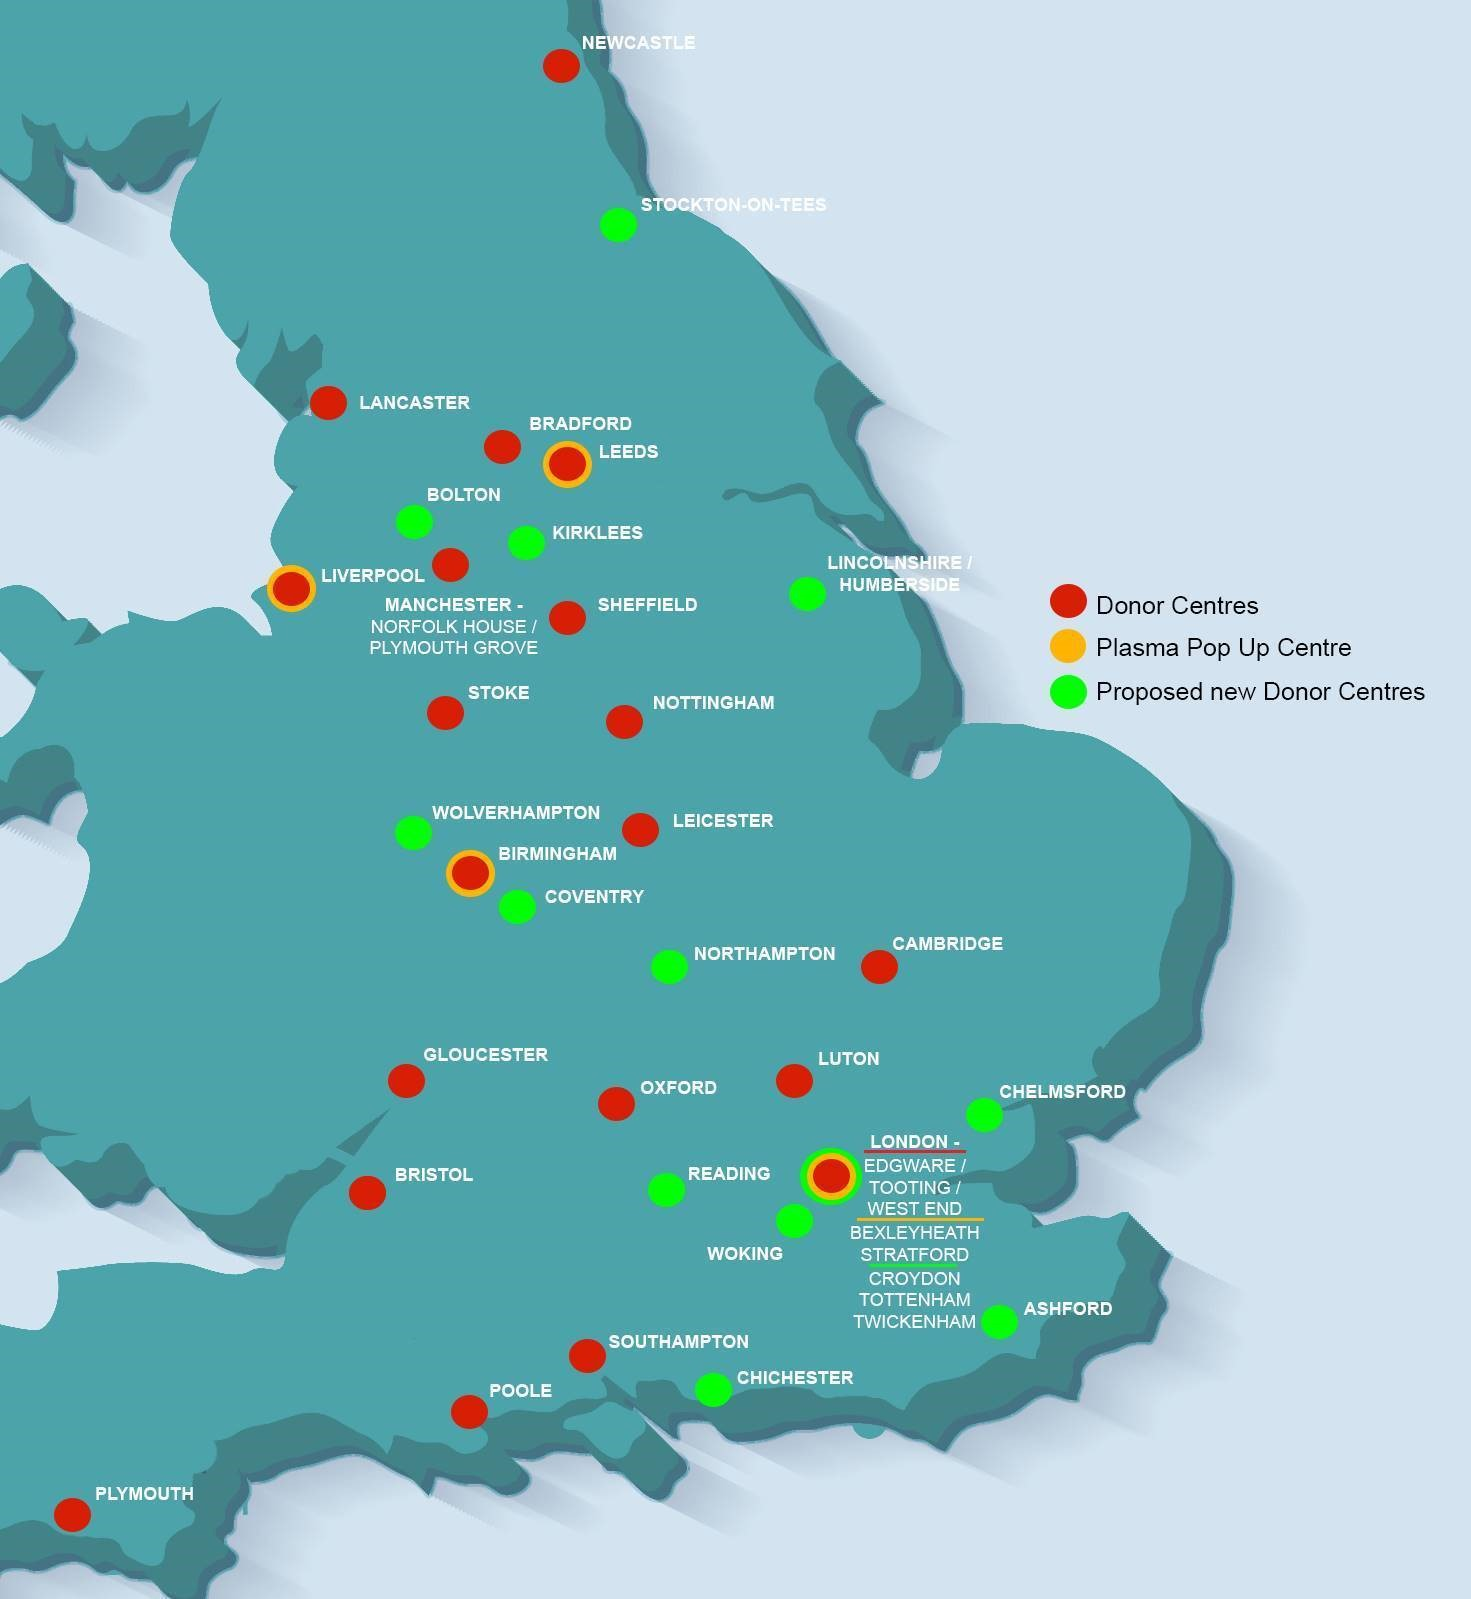 A map showing the locations of the 14 new donor centres, existing centres and pop-up centres. Information about existing donor centres can also be found at: https://www.nhsbt.nhs.uk/covid-19-research/plasma-donors/where-can-i-donate-plasma/